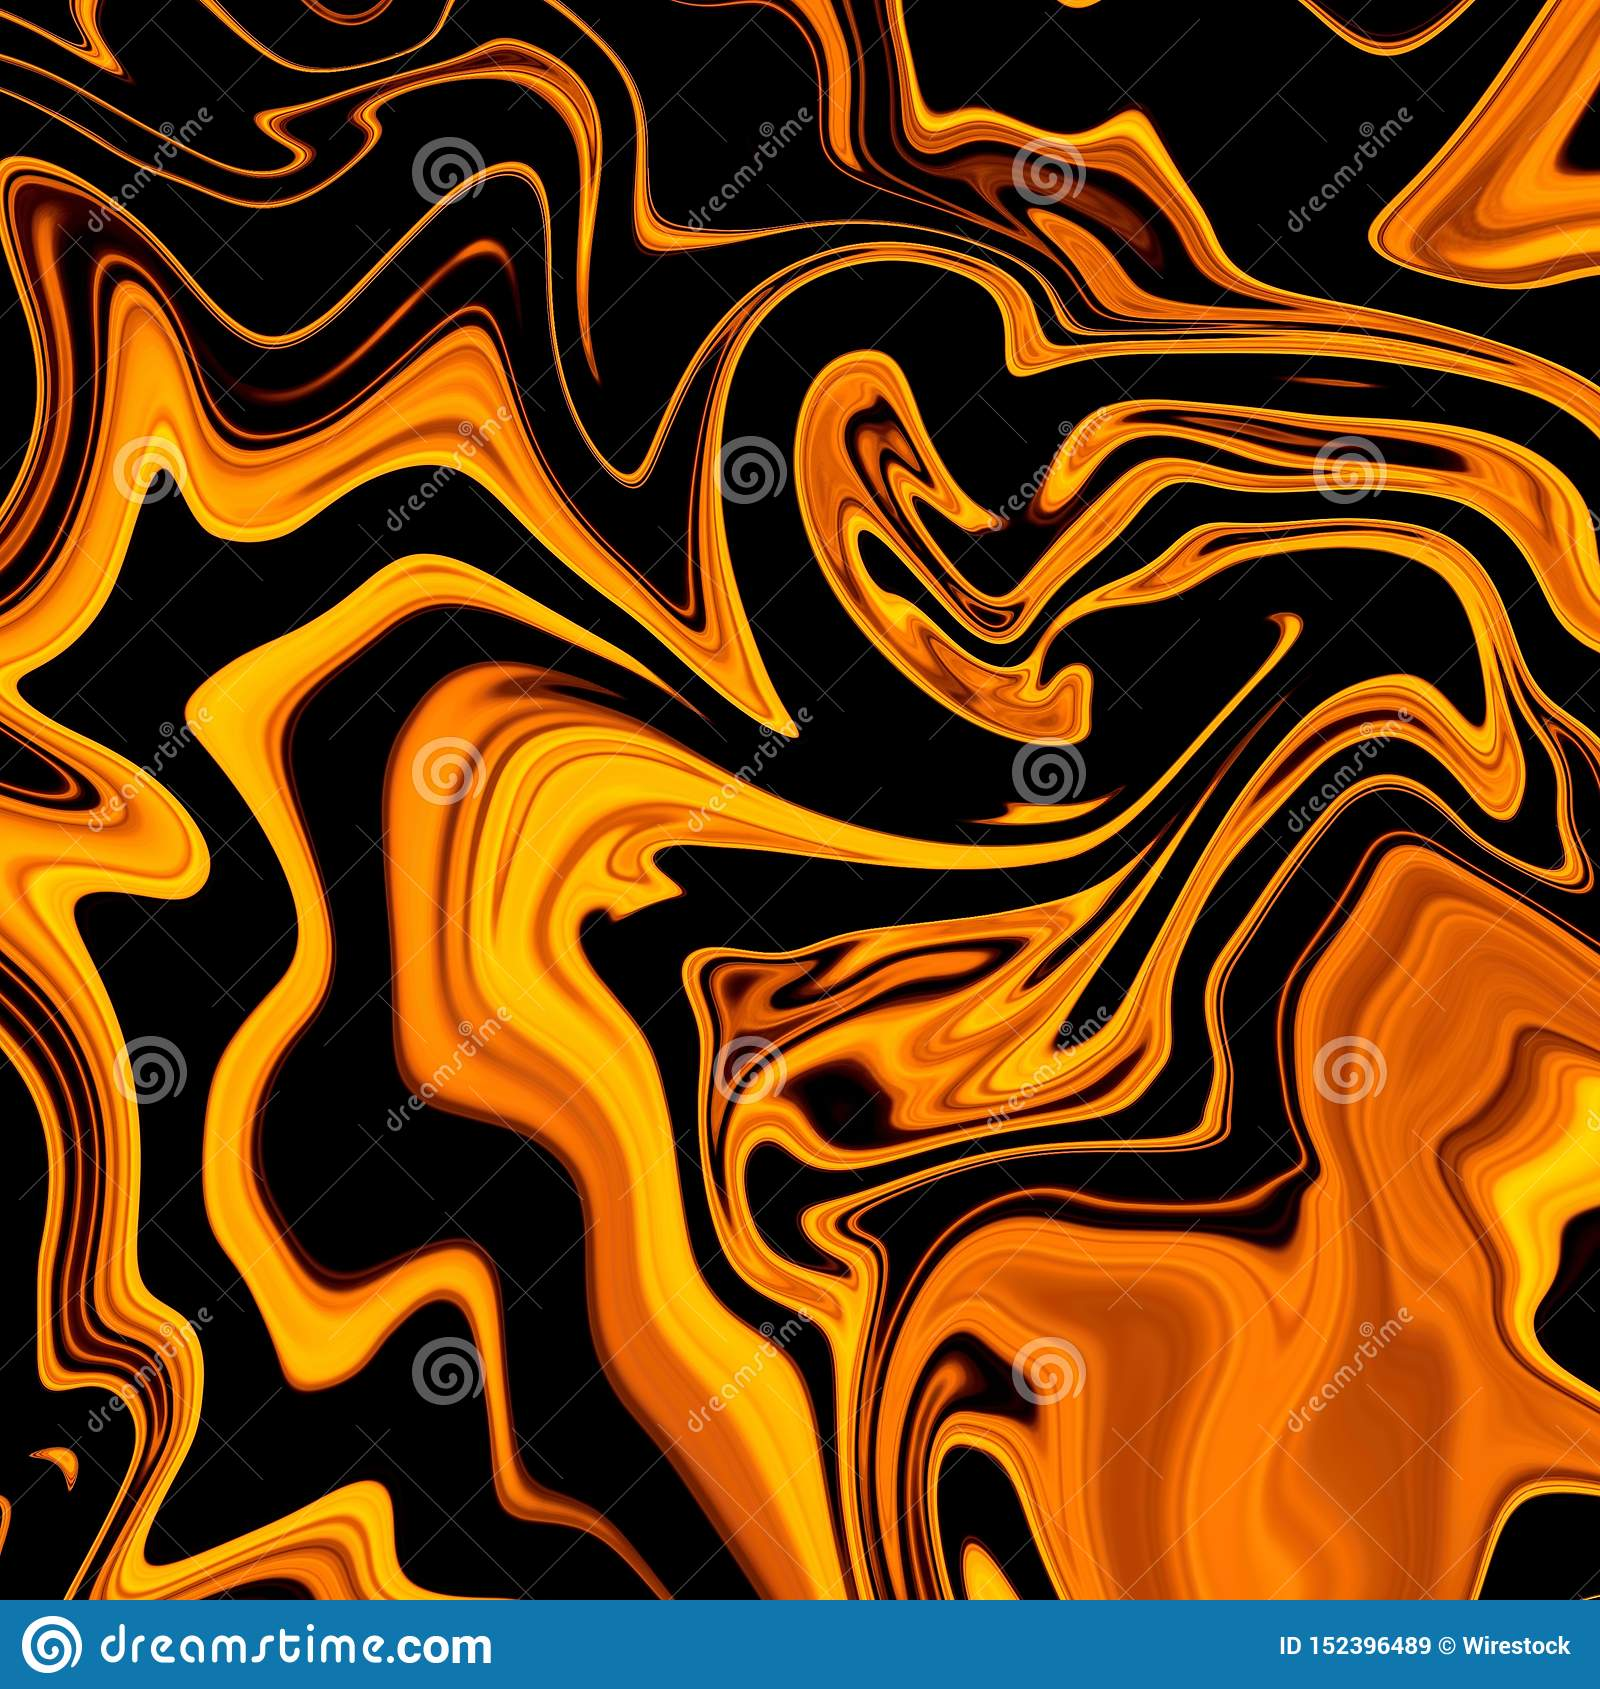 oil paint mixup black dark orange colors perfect cool art background wallpaper 152396489